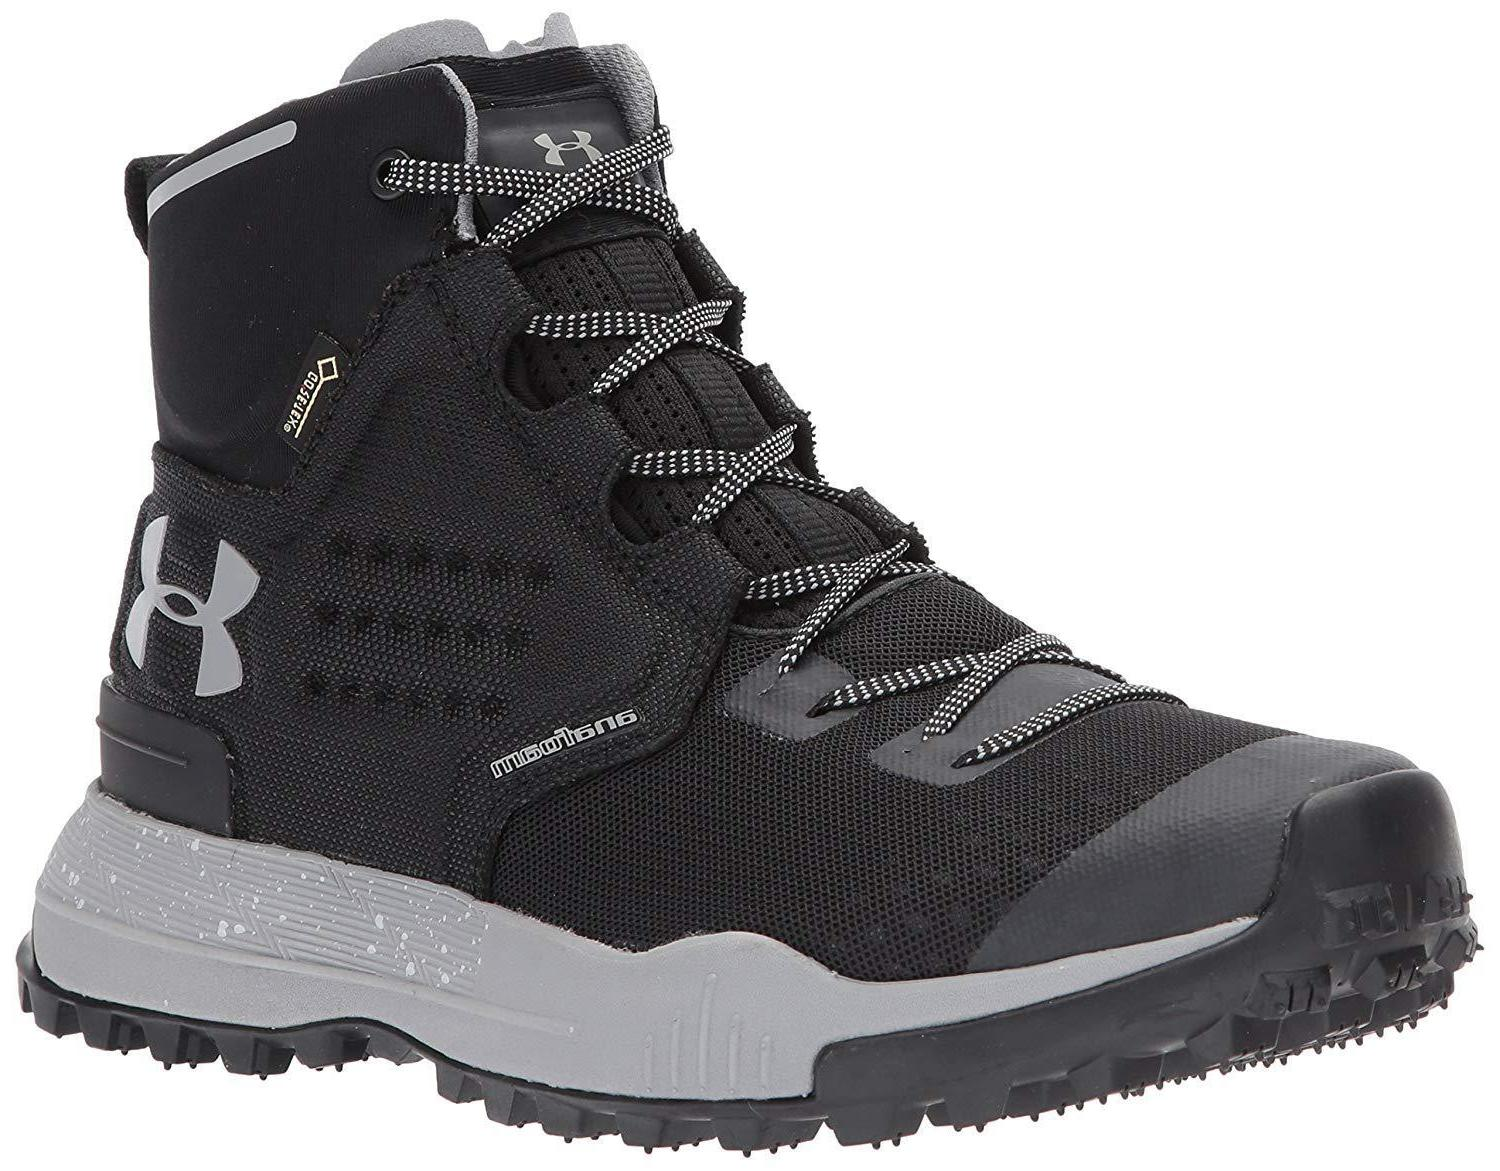 c1407872a6d Under Armour Women s Newell Ridge Mid Gore-tex Hiking Boot